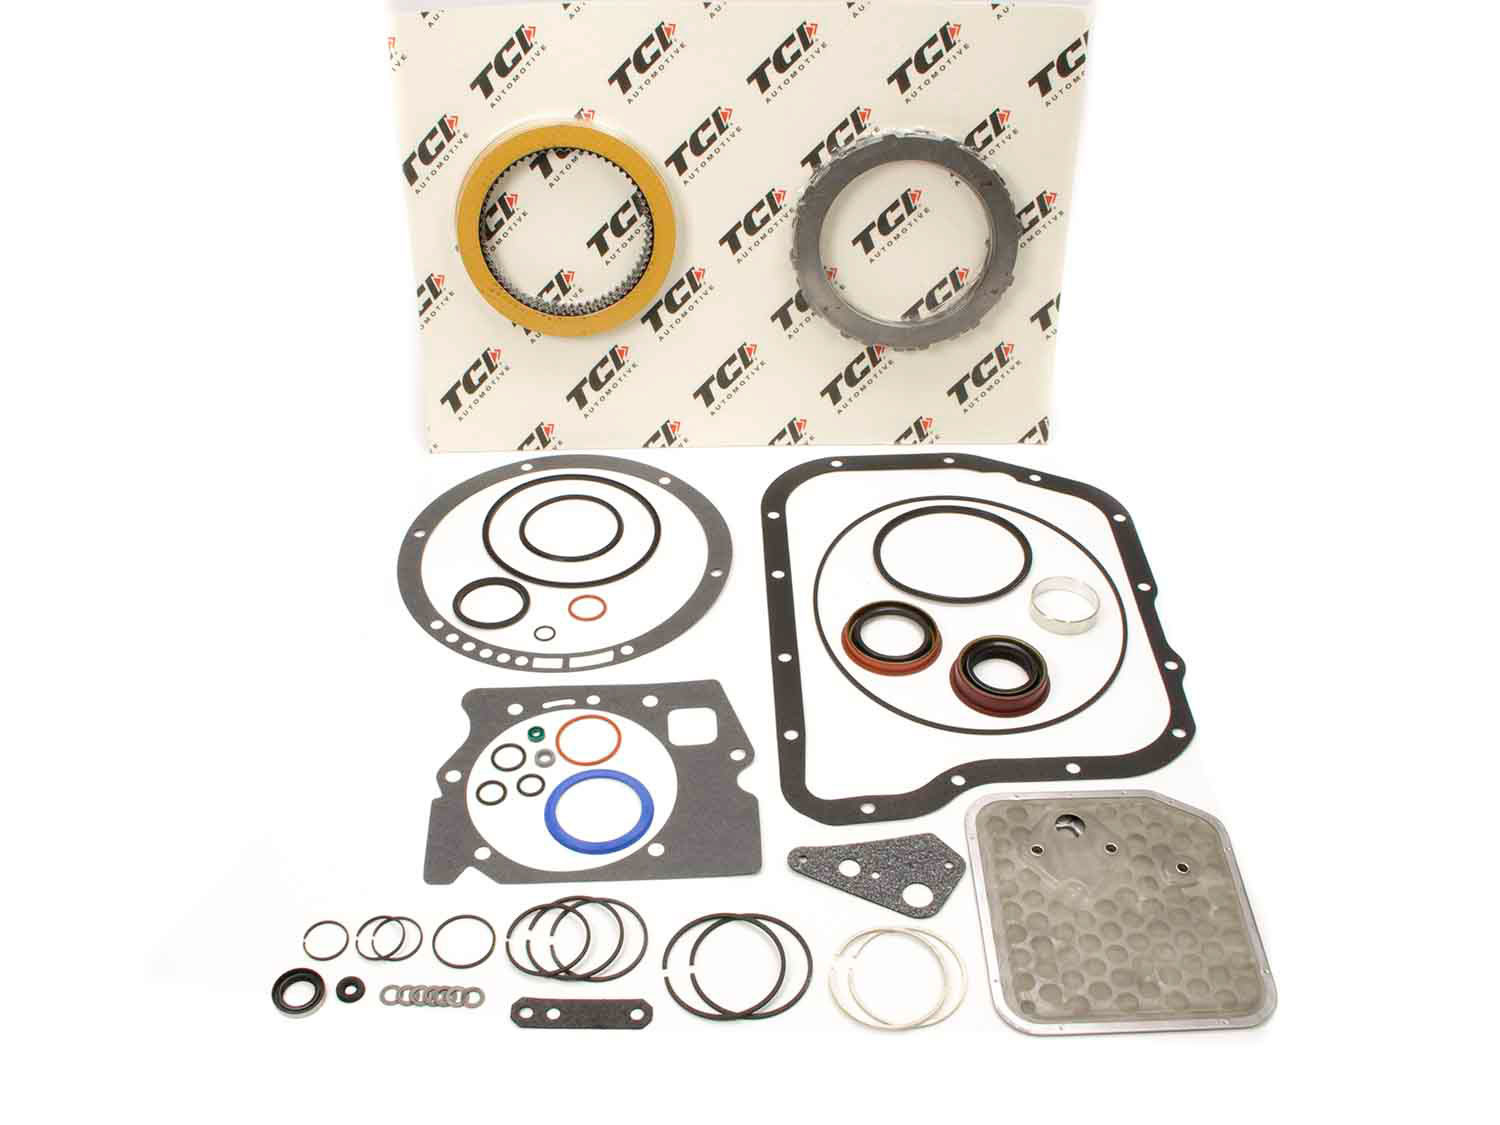 TCI 149300 Transmission Rebuild Kit, Automatic, Master Racing Overhaul, Clutches / Steels / Bands / Filter / Gaskets / Seals, Torqueflite 727, Kit